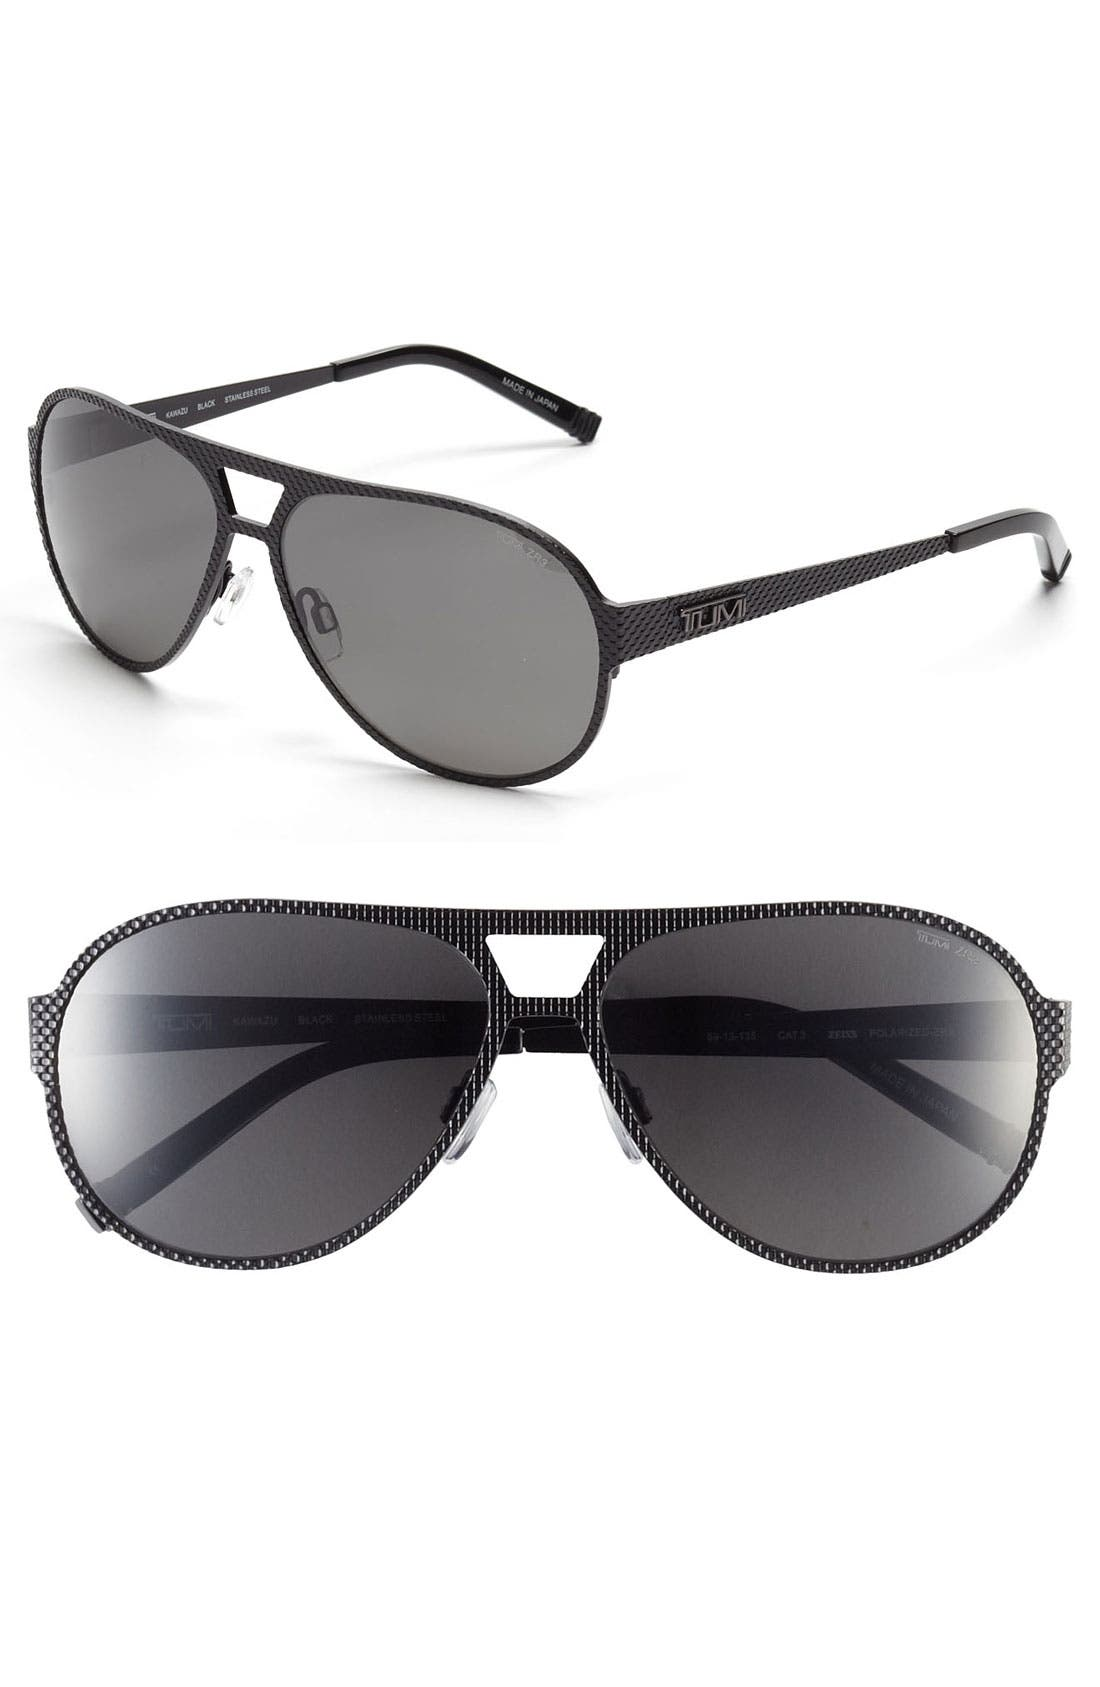 Main Image - Tumi 'Kawazu' 59mm Polarized Sunglasses